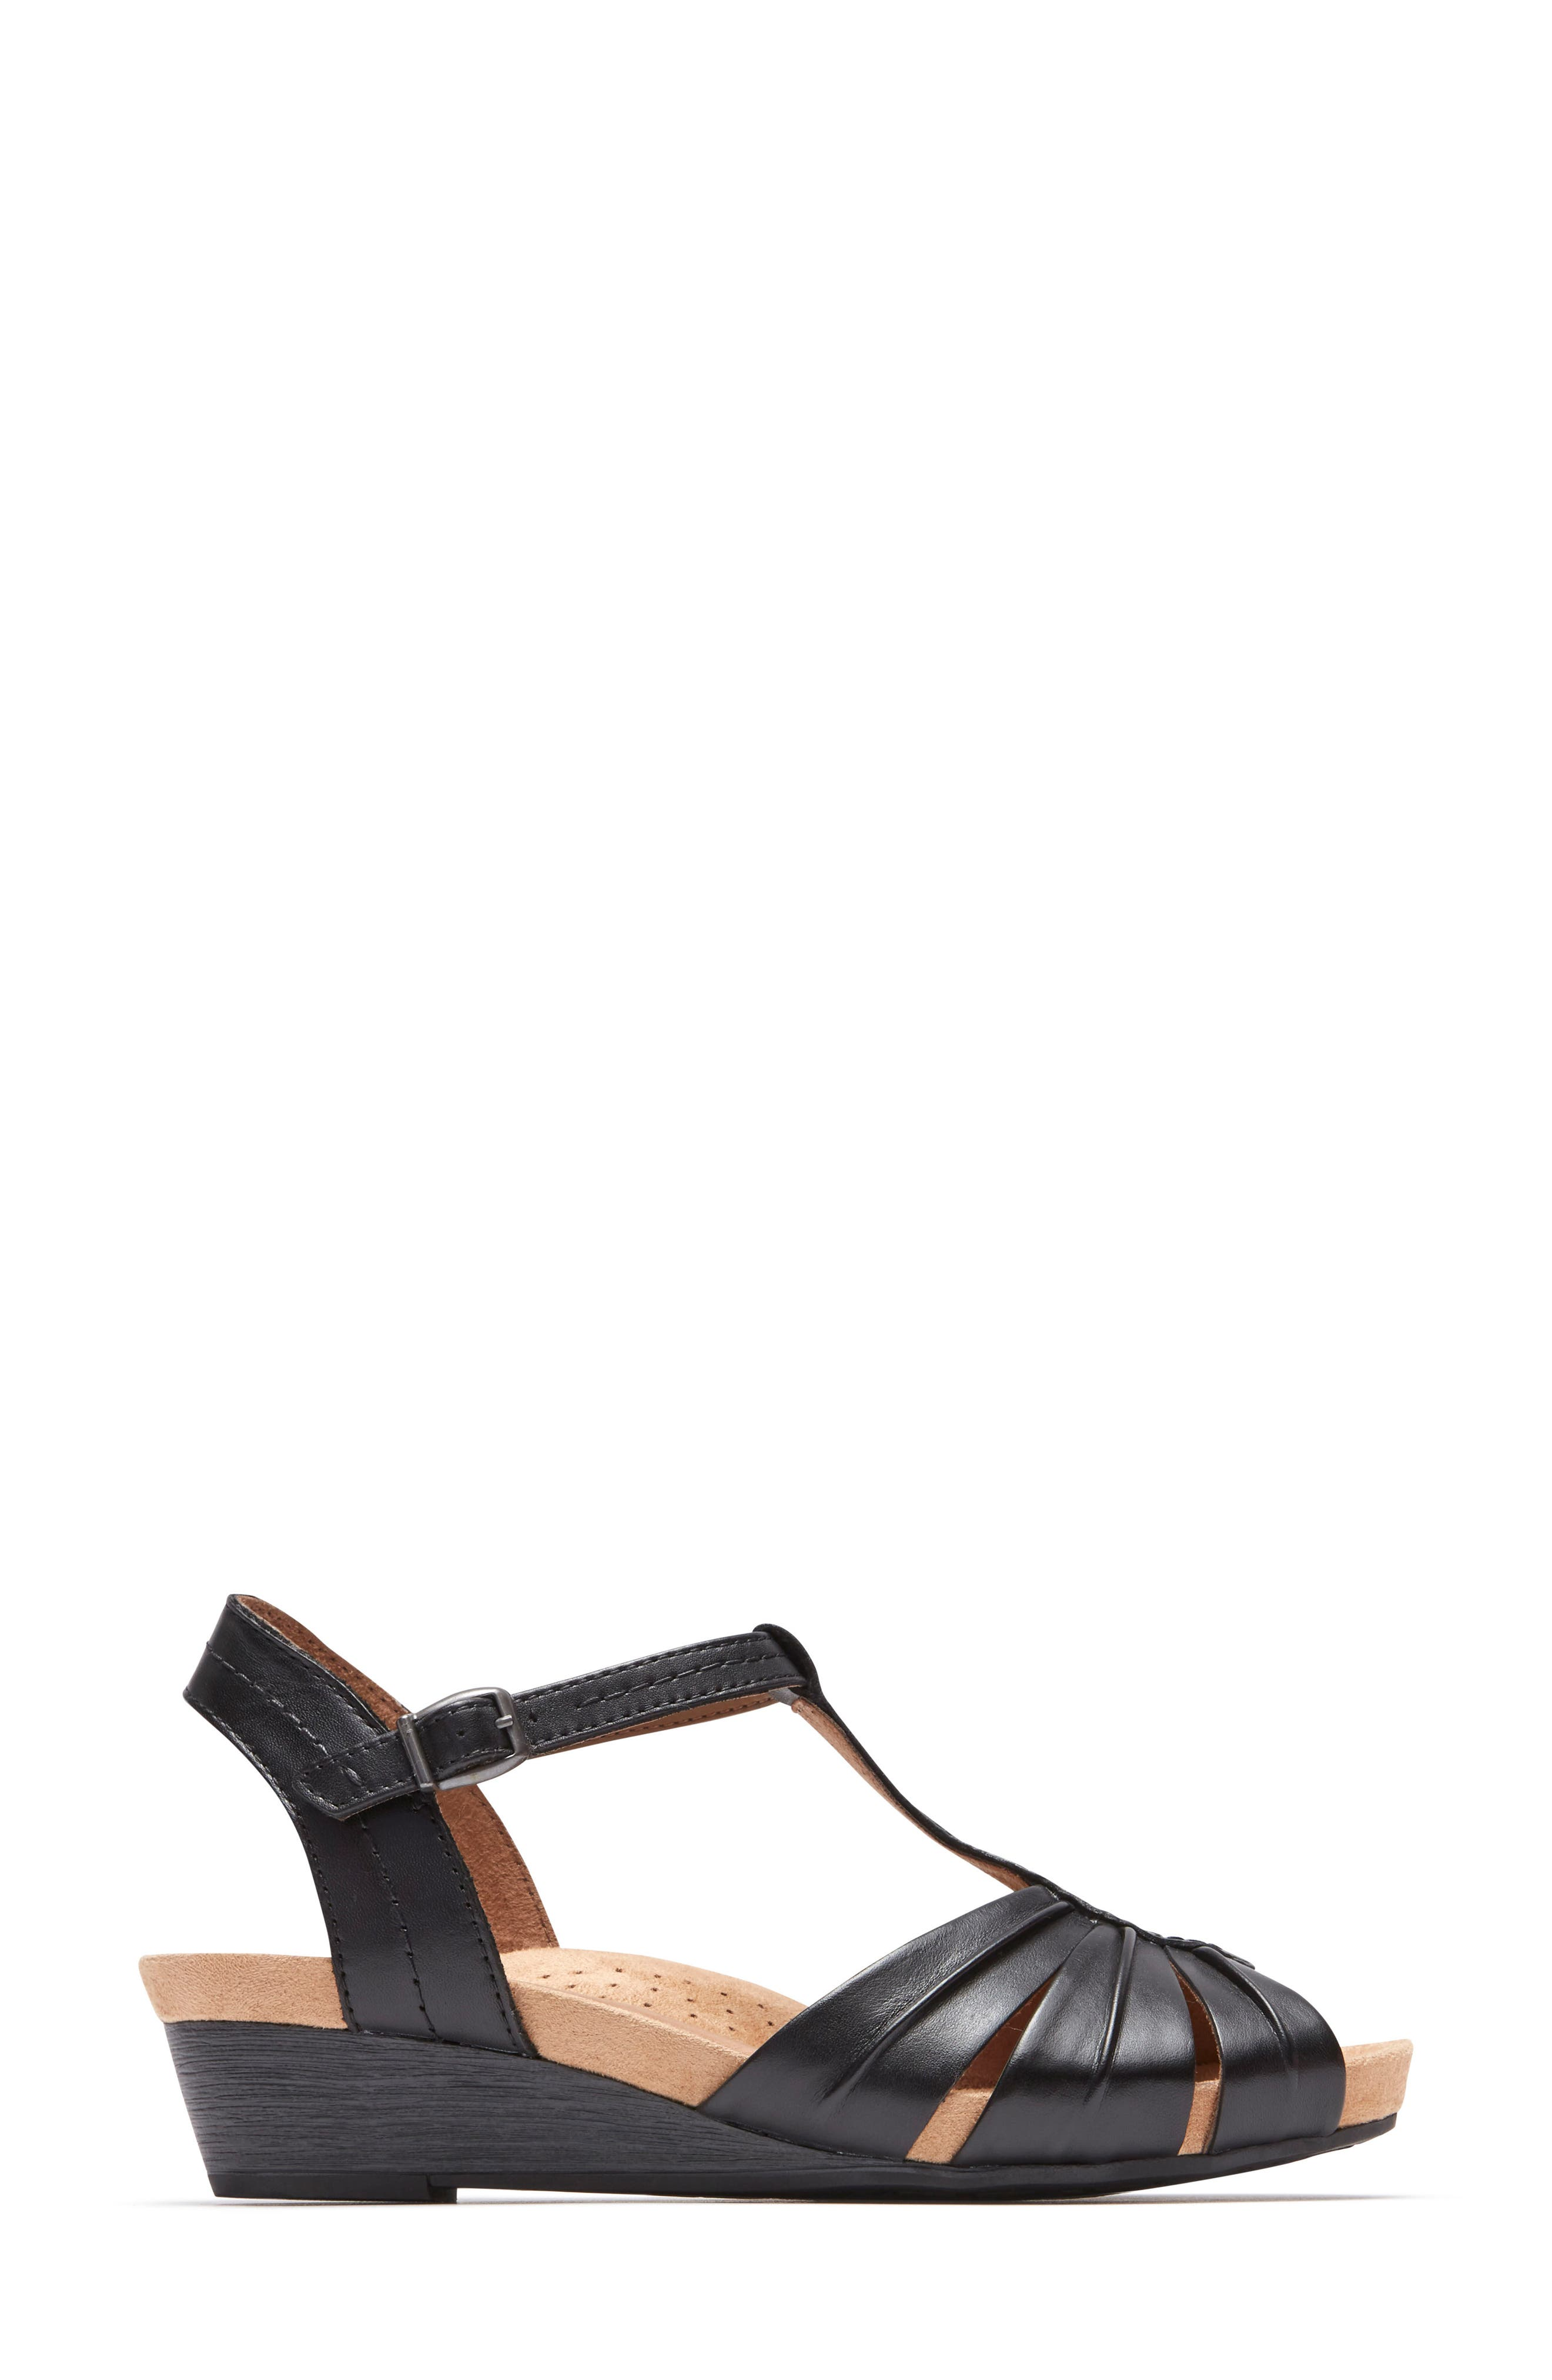 Hollywood Pleat Wedge Sandal,                             Alternate thumbnail 5, color,                             Black Leather